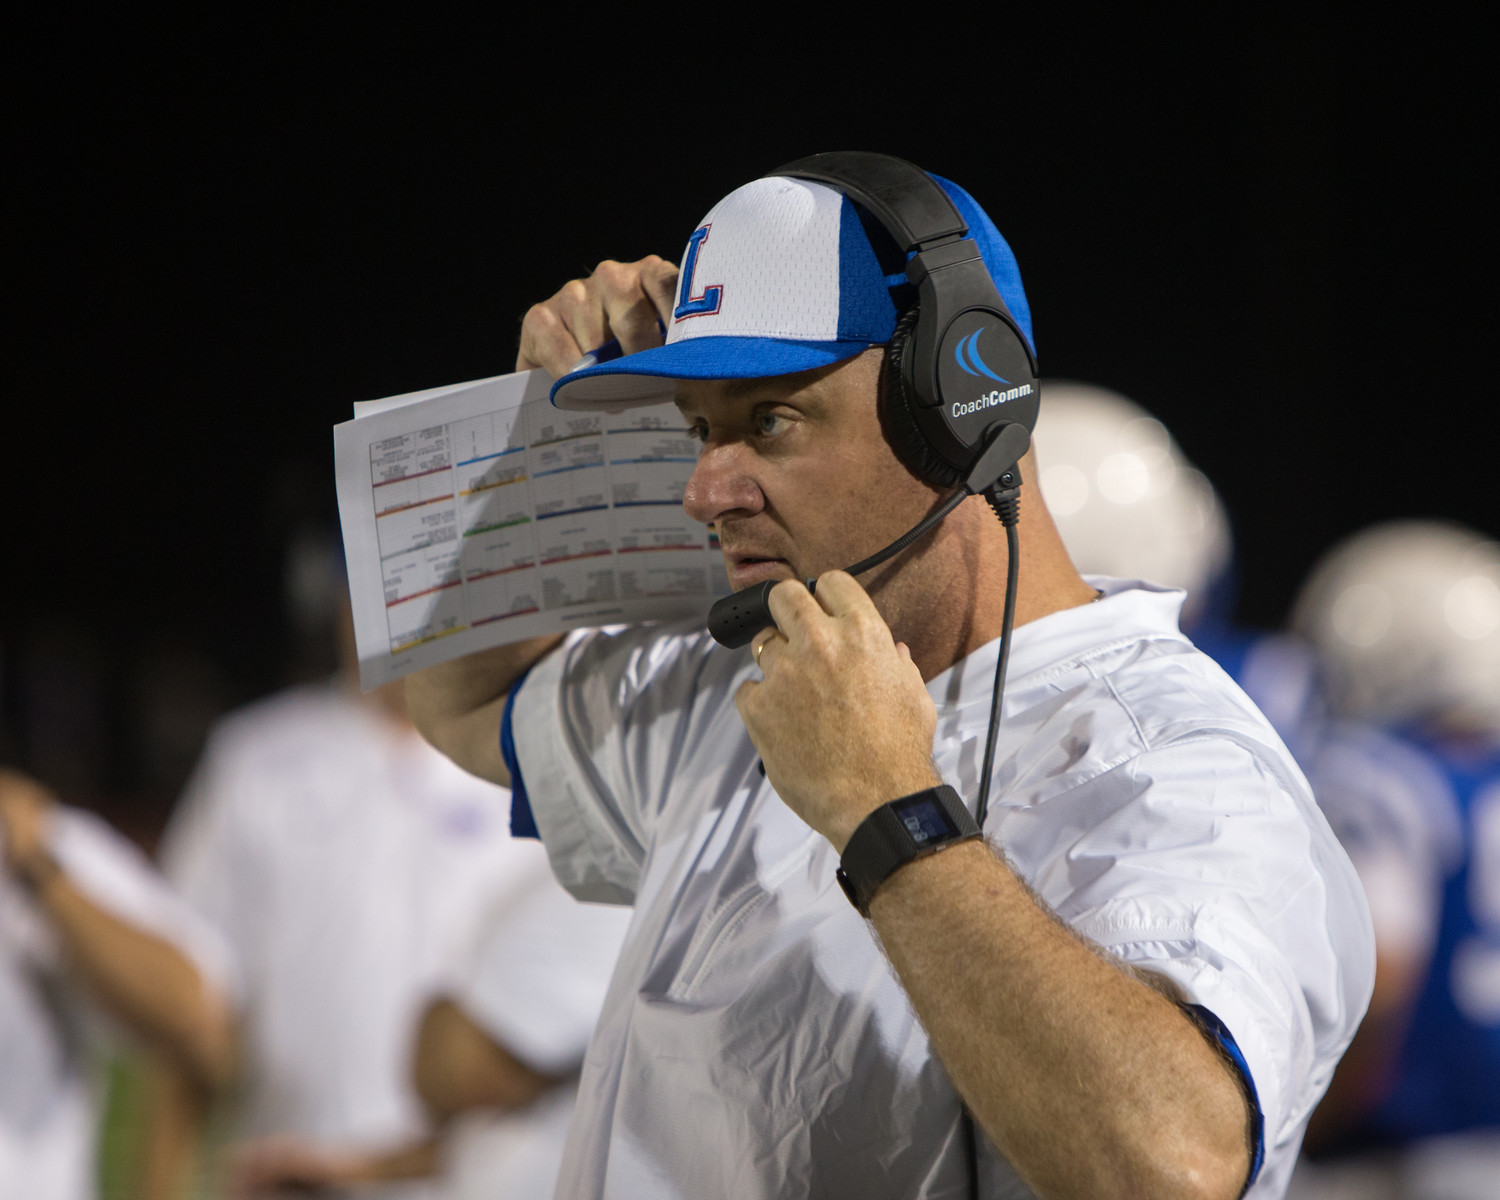 Leander Lions head coach Tim Smith during a high school football game between the Leander Lions and the Ellison Eagles at Bible Stadium in Leander, Texas, on Thursday, August 31, 2017.